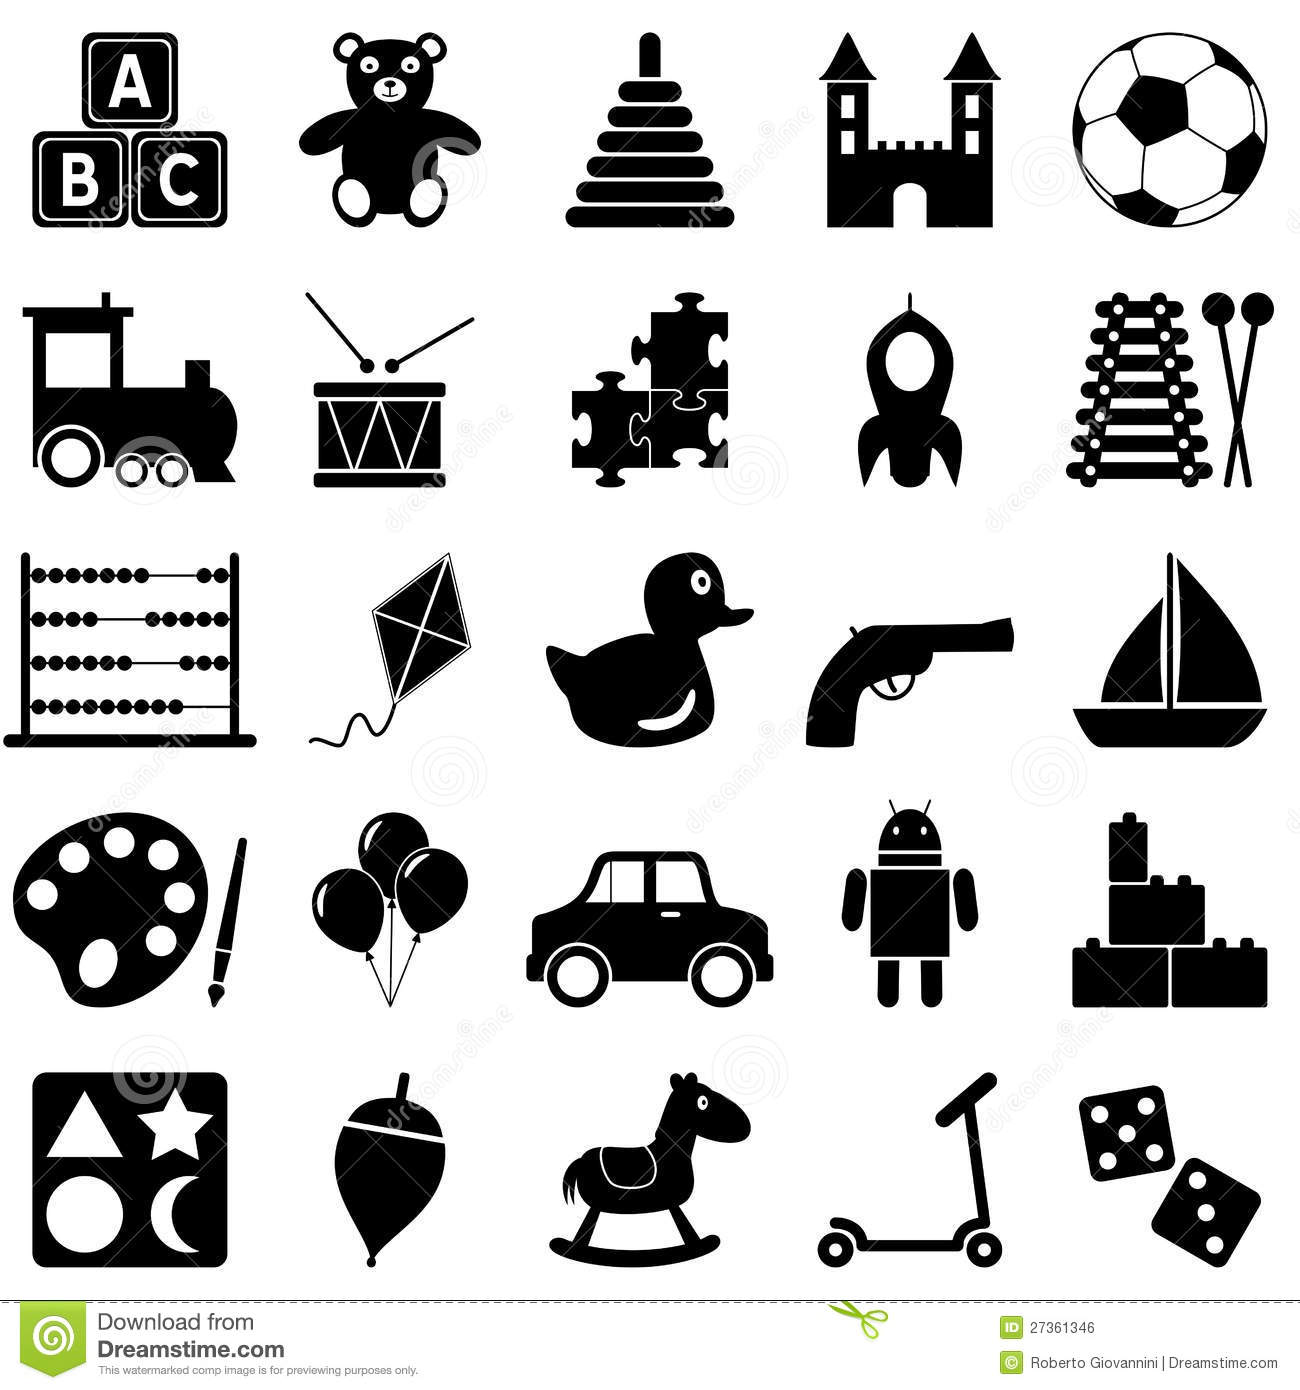 toys black and white icons royalty free stock image xylophone clip art black and white toy xylophone clipart